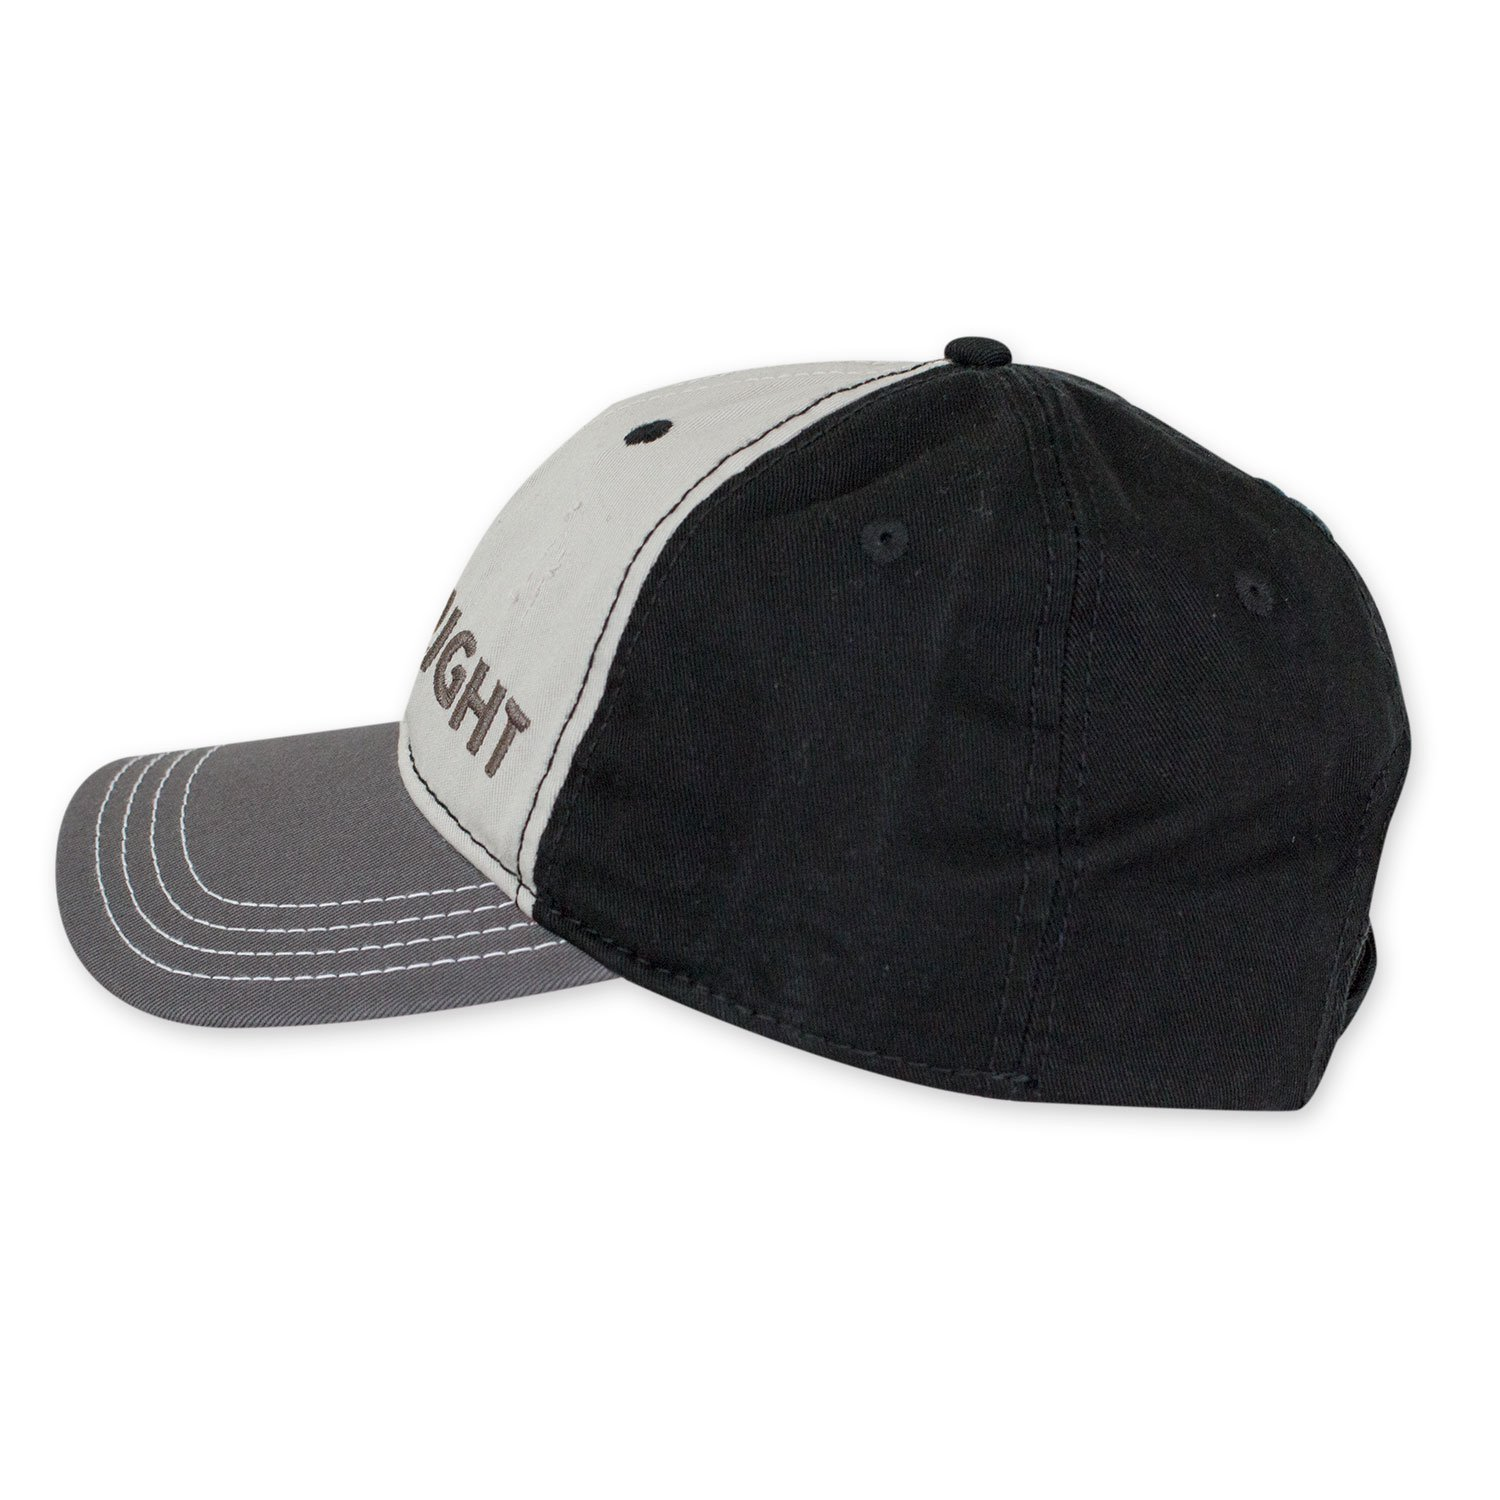 0f463373 Coors Light Mountain Logo Hat at Amazon Men's Clothing store: